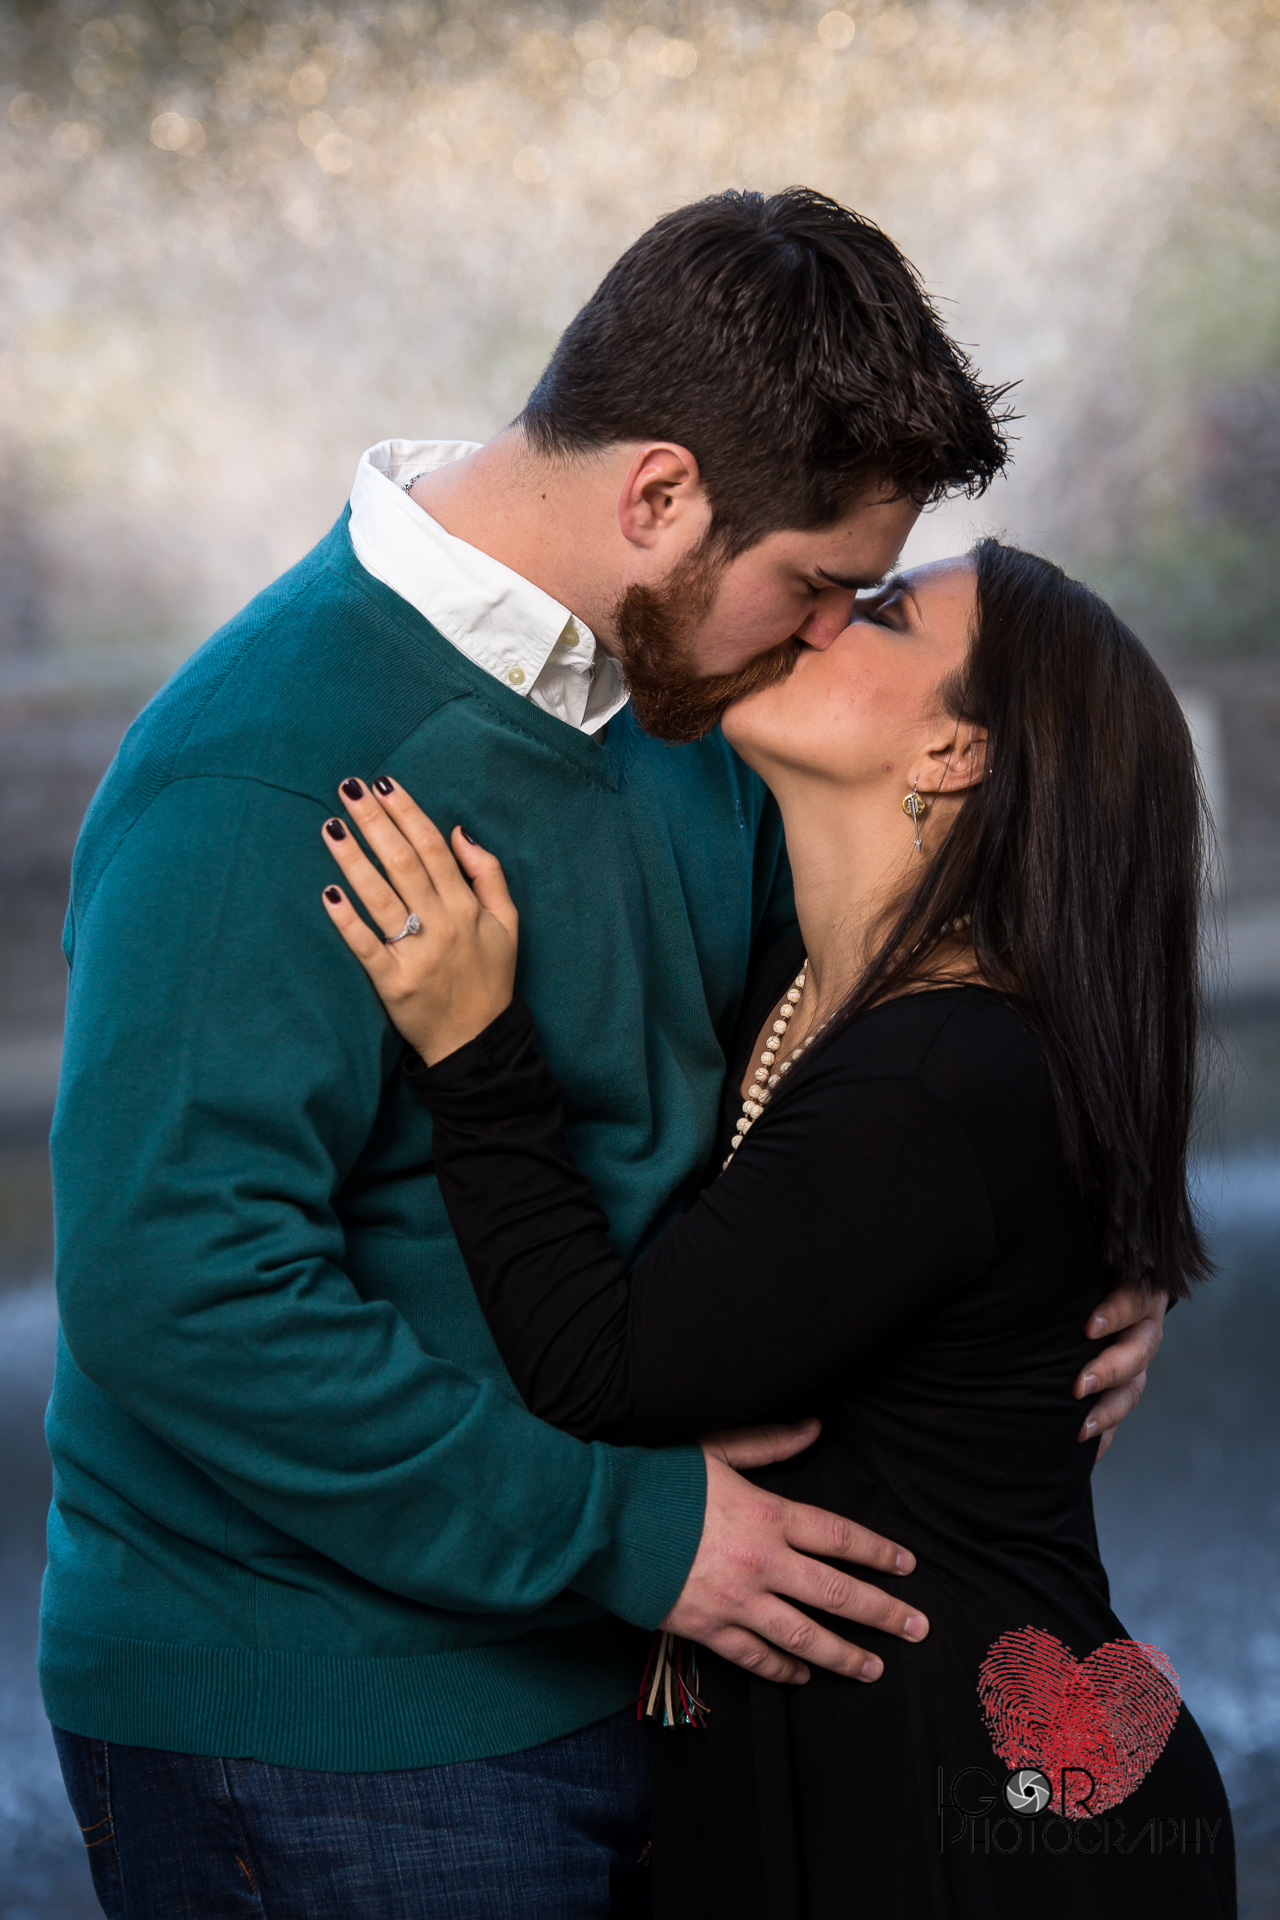 Engagement kiss photo